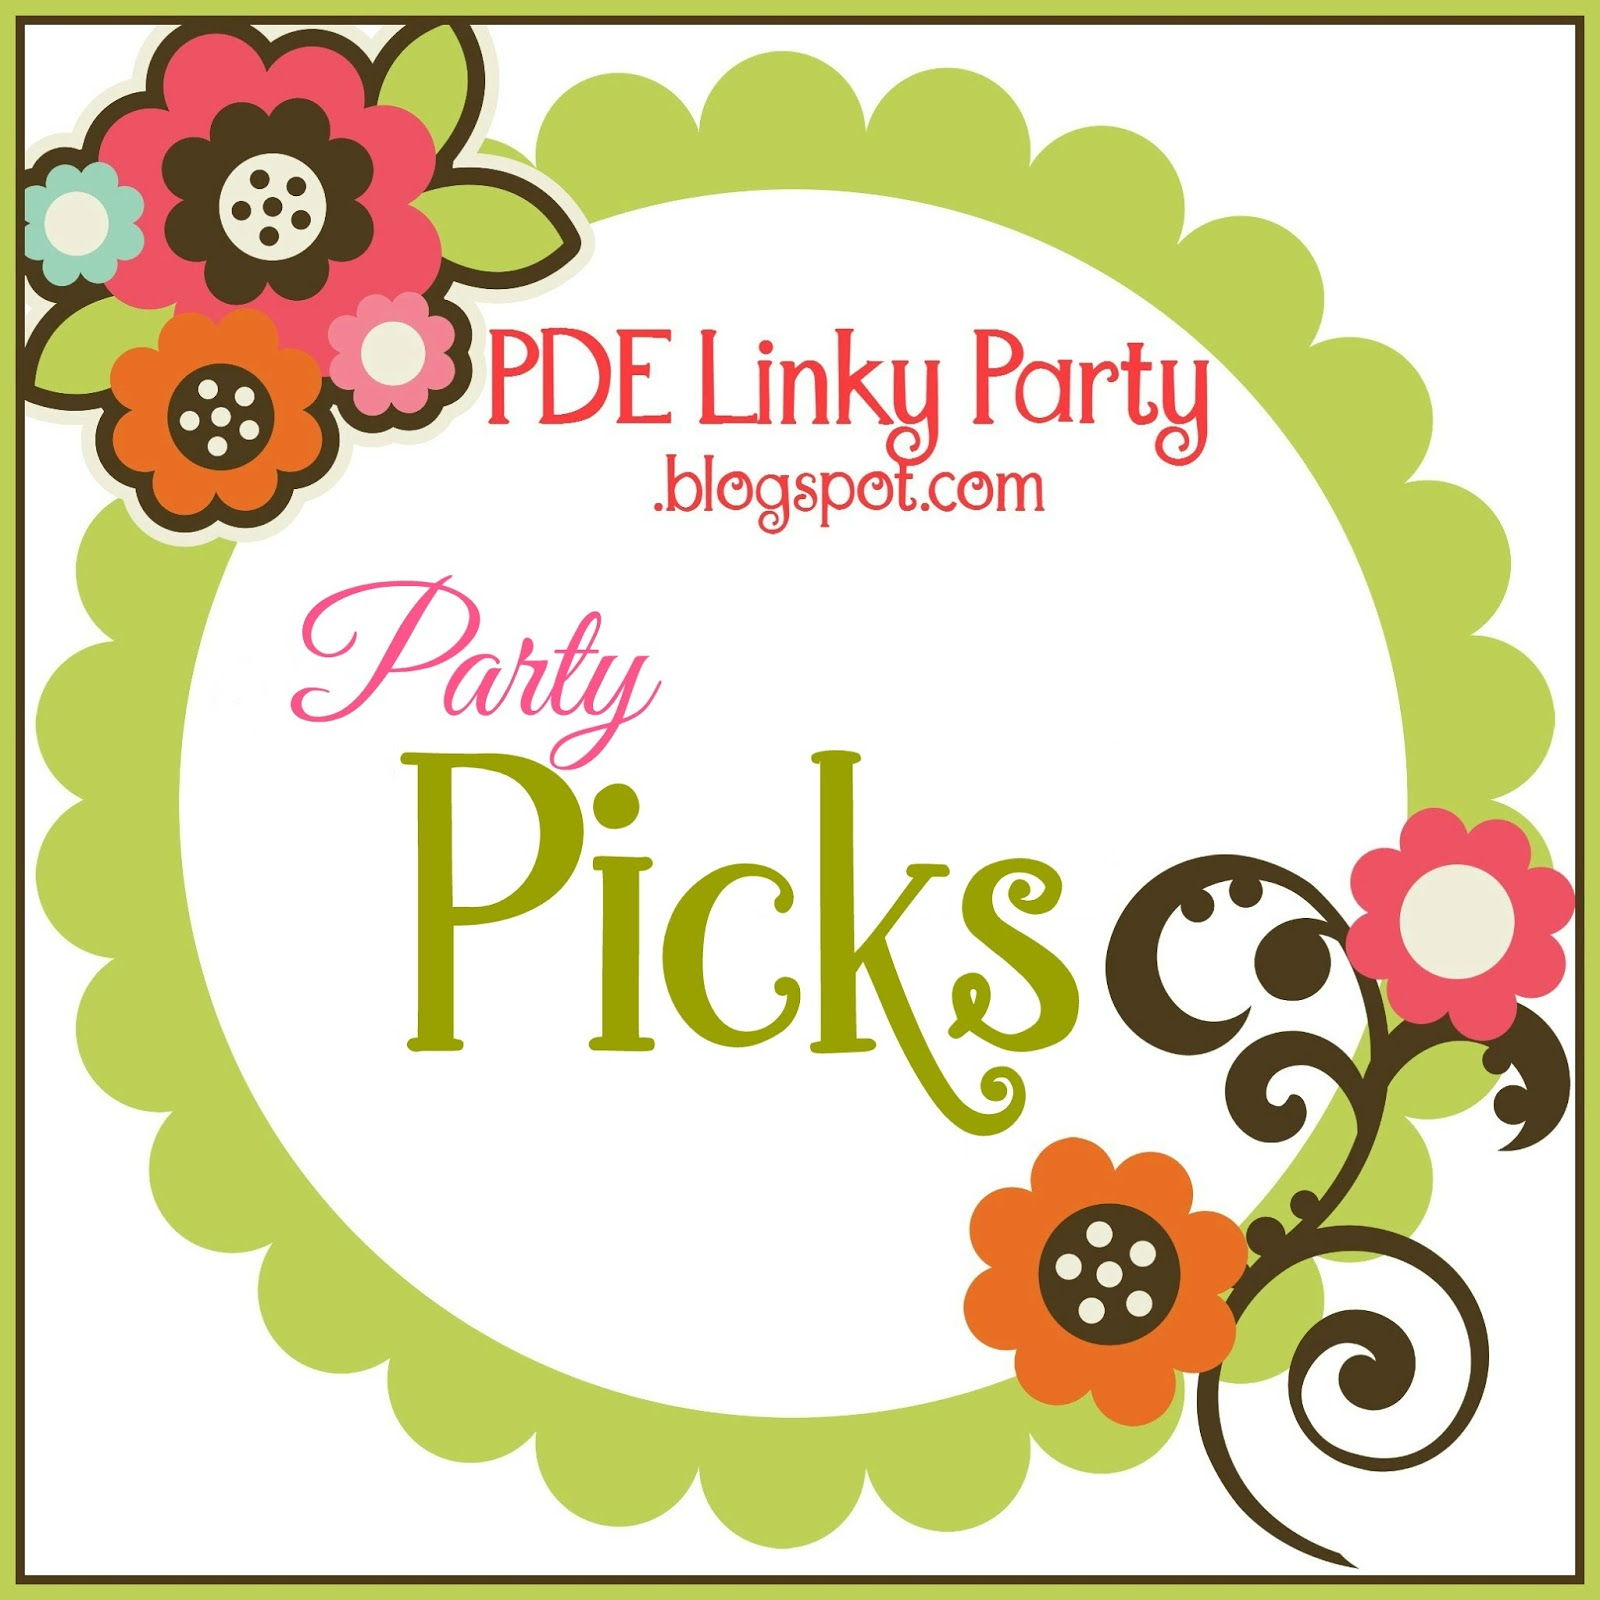 One of the top 5 picks @ PDE Linky